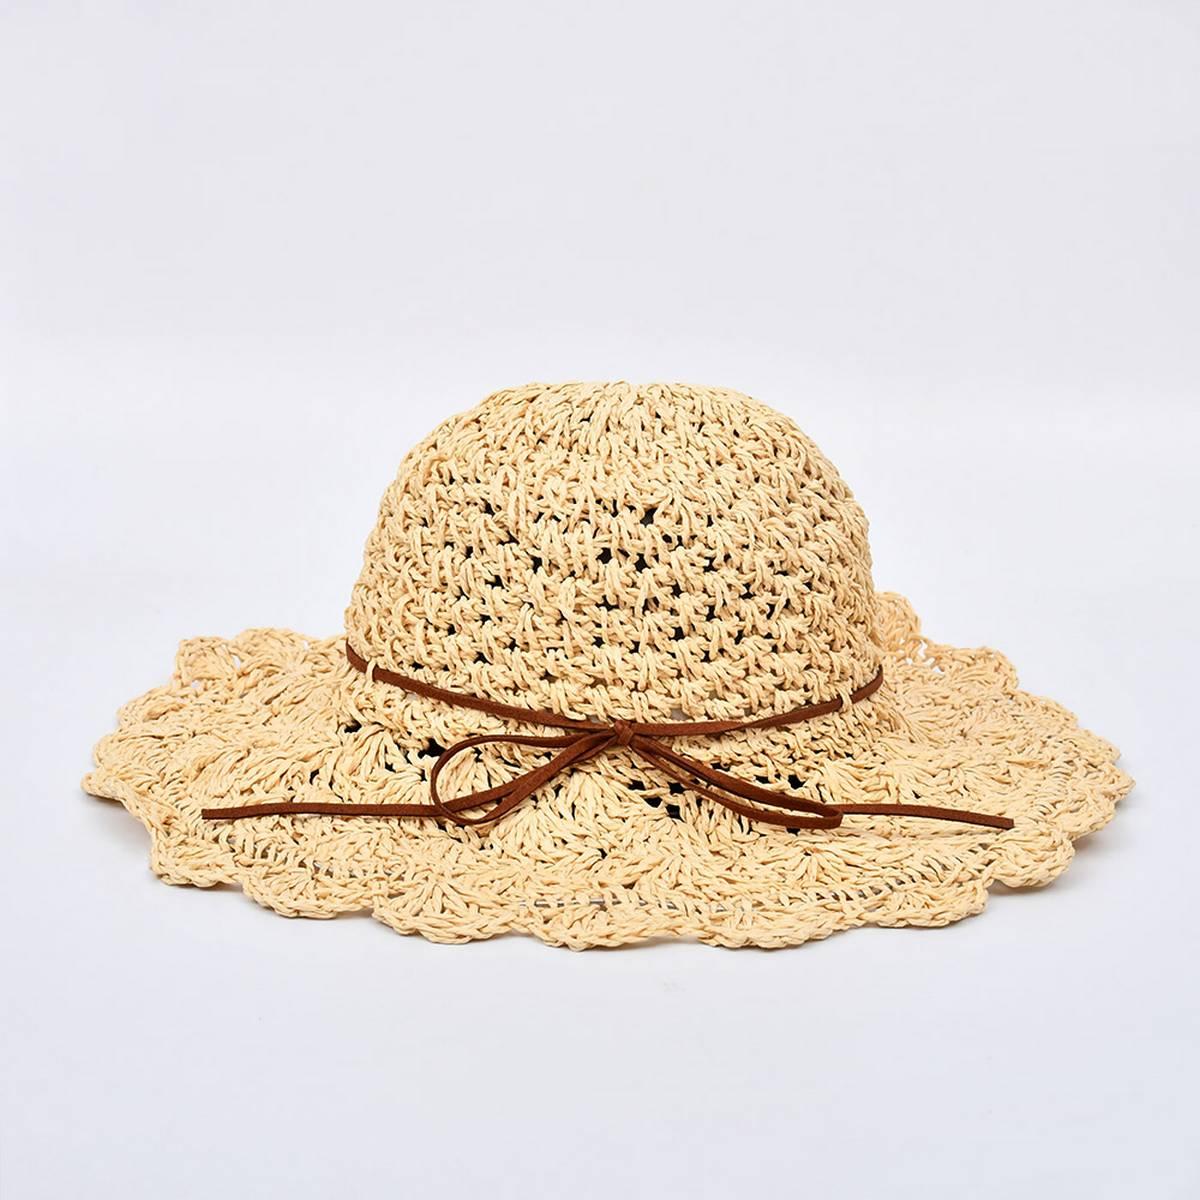 Stylish Sun Hat Wide Casual Brimmed Floppy Folding Solid Summer & Spring Hat Beach Hat – Off White